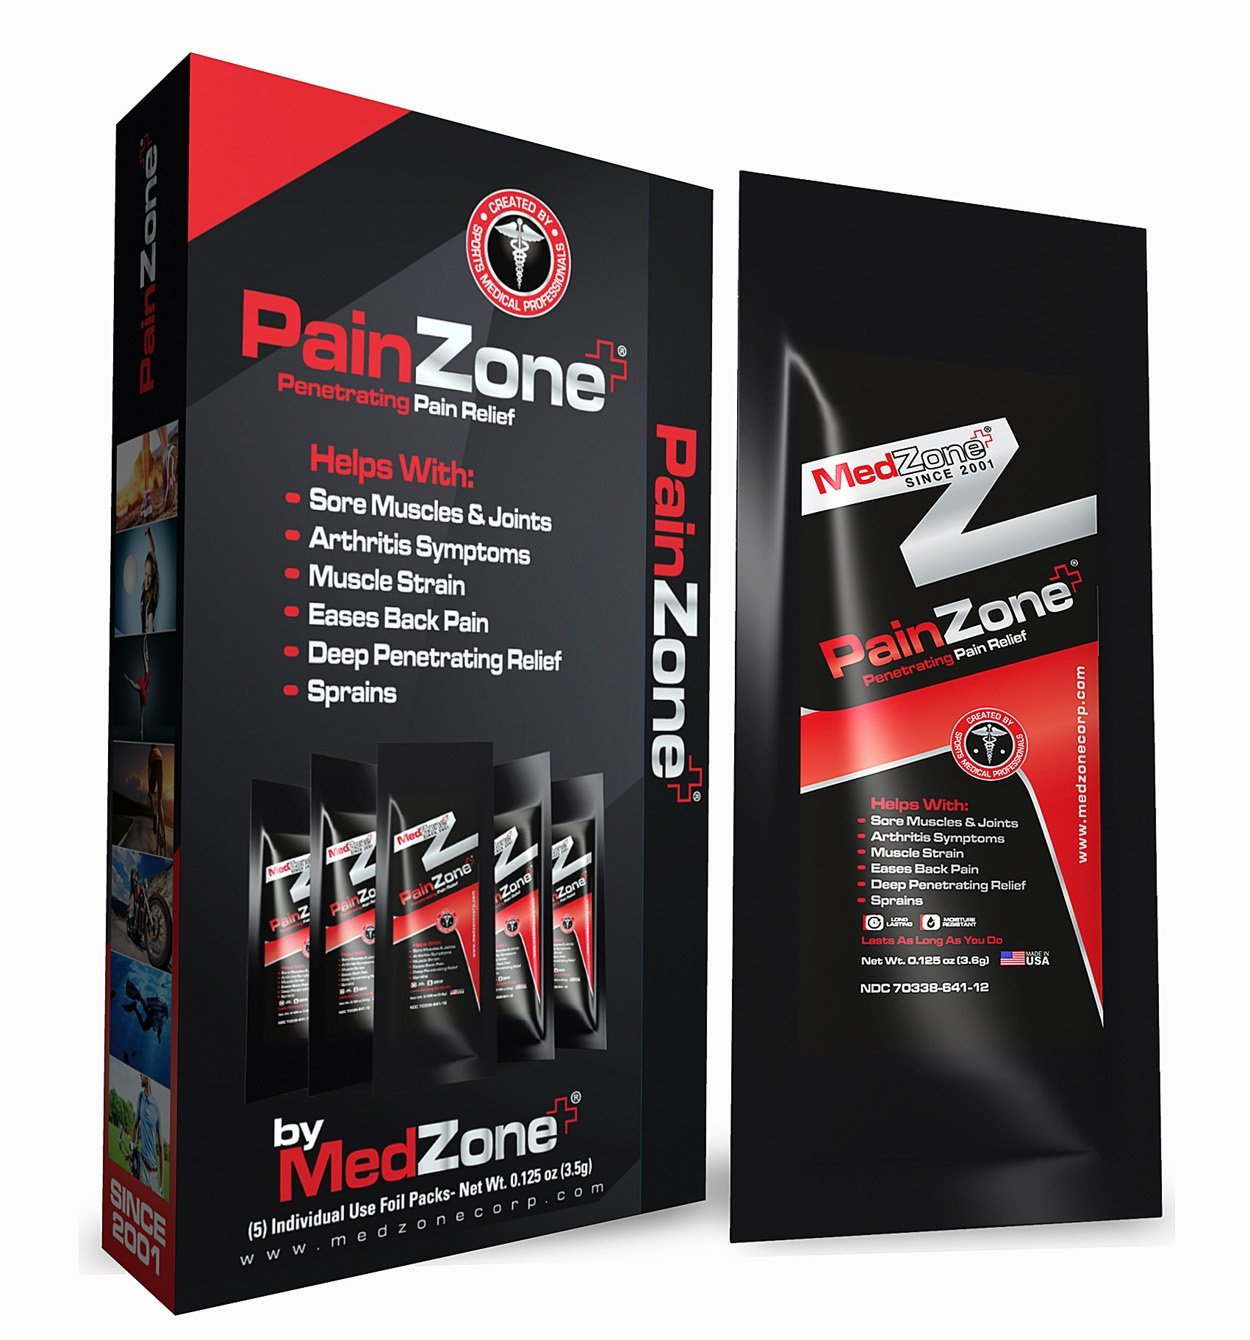 PainZone MedZone Pain Relief with Menthol and Aloe Vera for Knee, Shoulder and Back Pain, Anti-Inflammatory, Back pain relief, Helps plantar fasciitis, fibromyalgia and arthritis, 1/8oz 5 packs/box